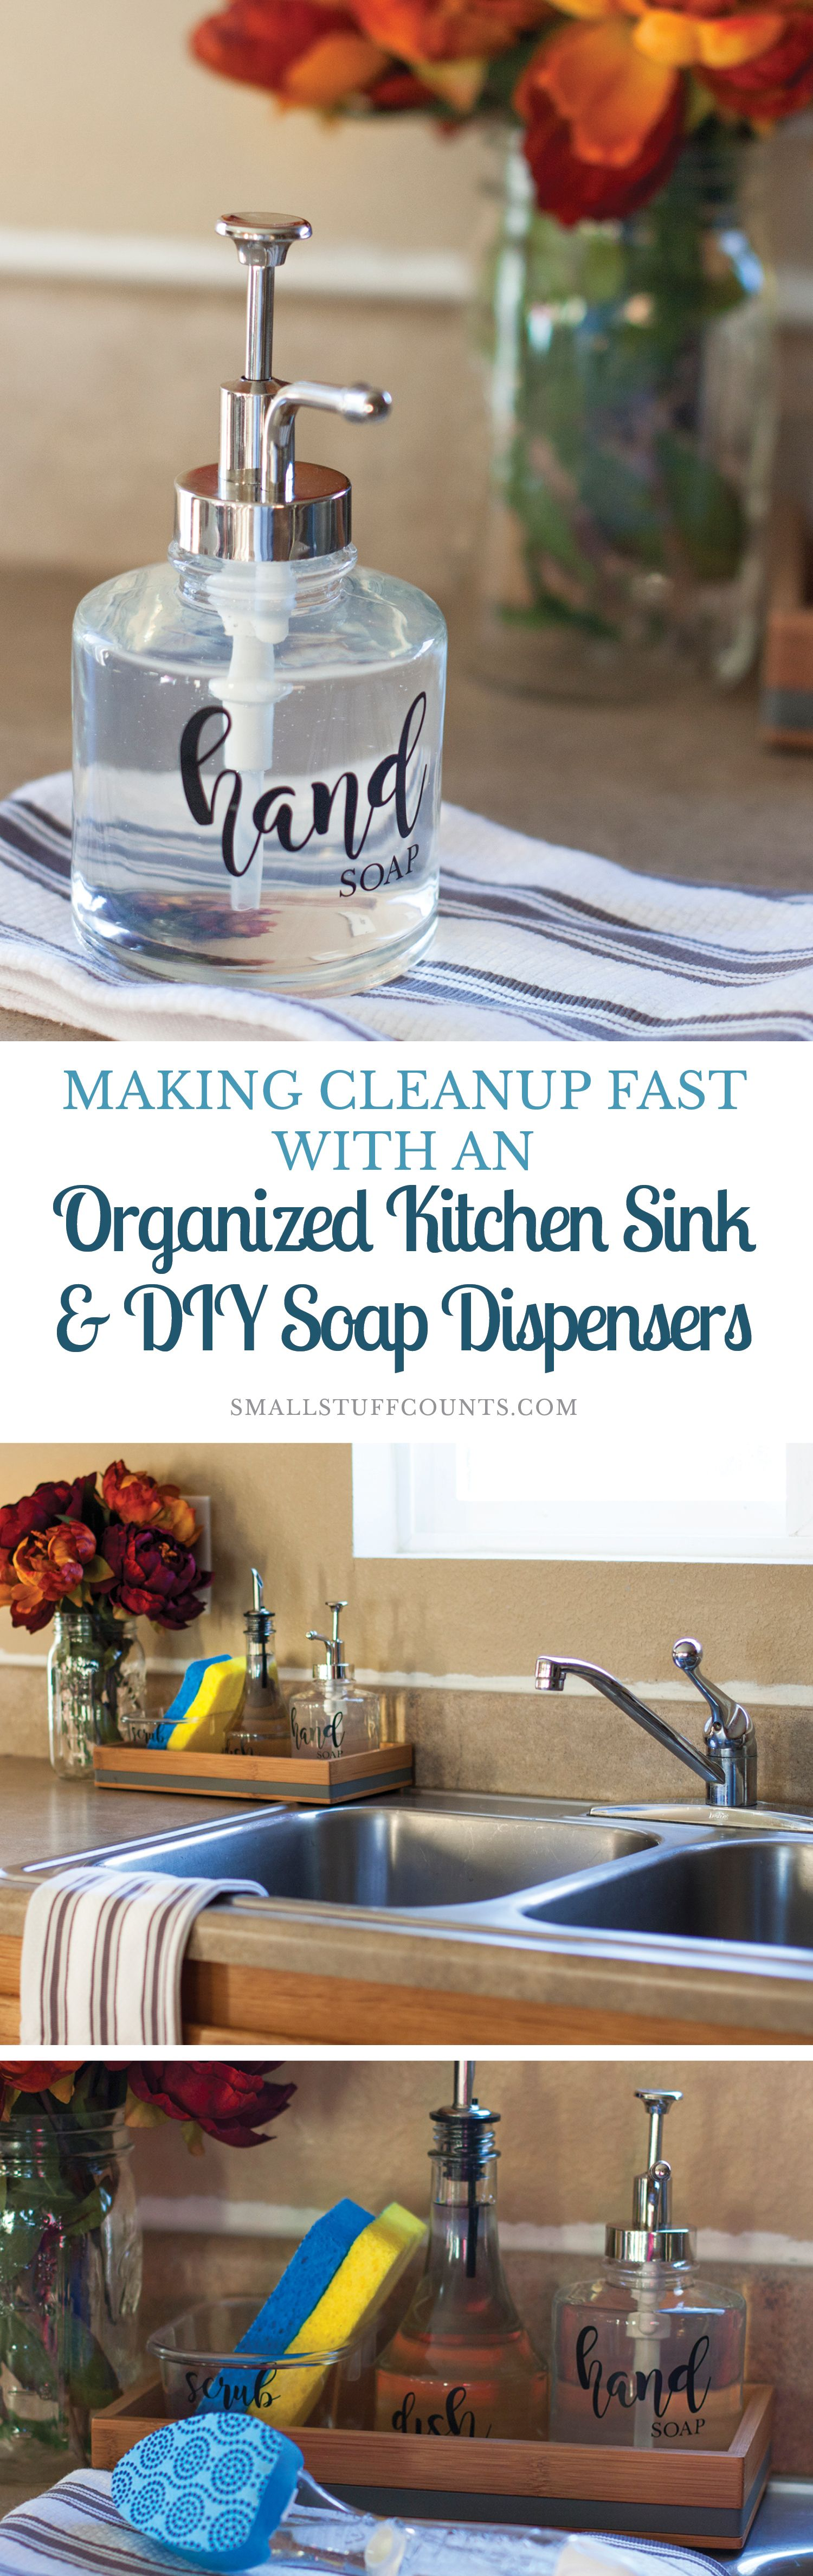 making cleanup fast with an organized kitchen sink diy soap rh pinterest com